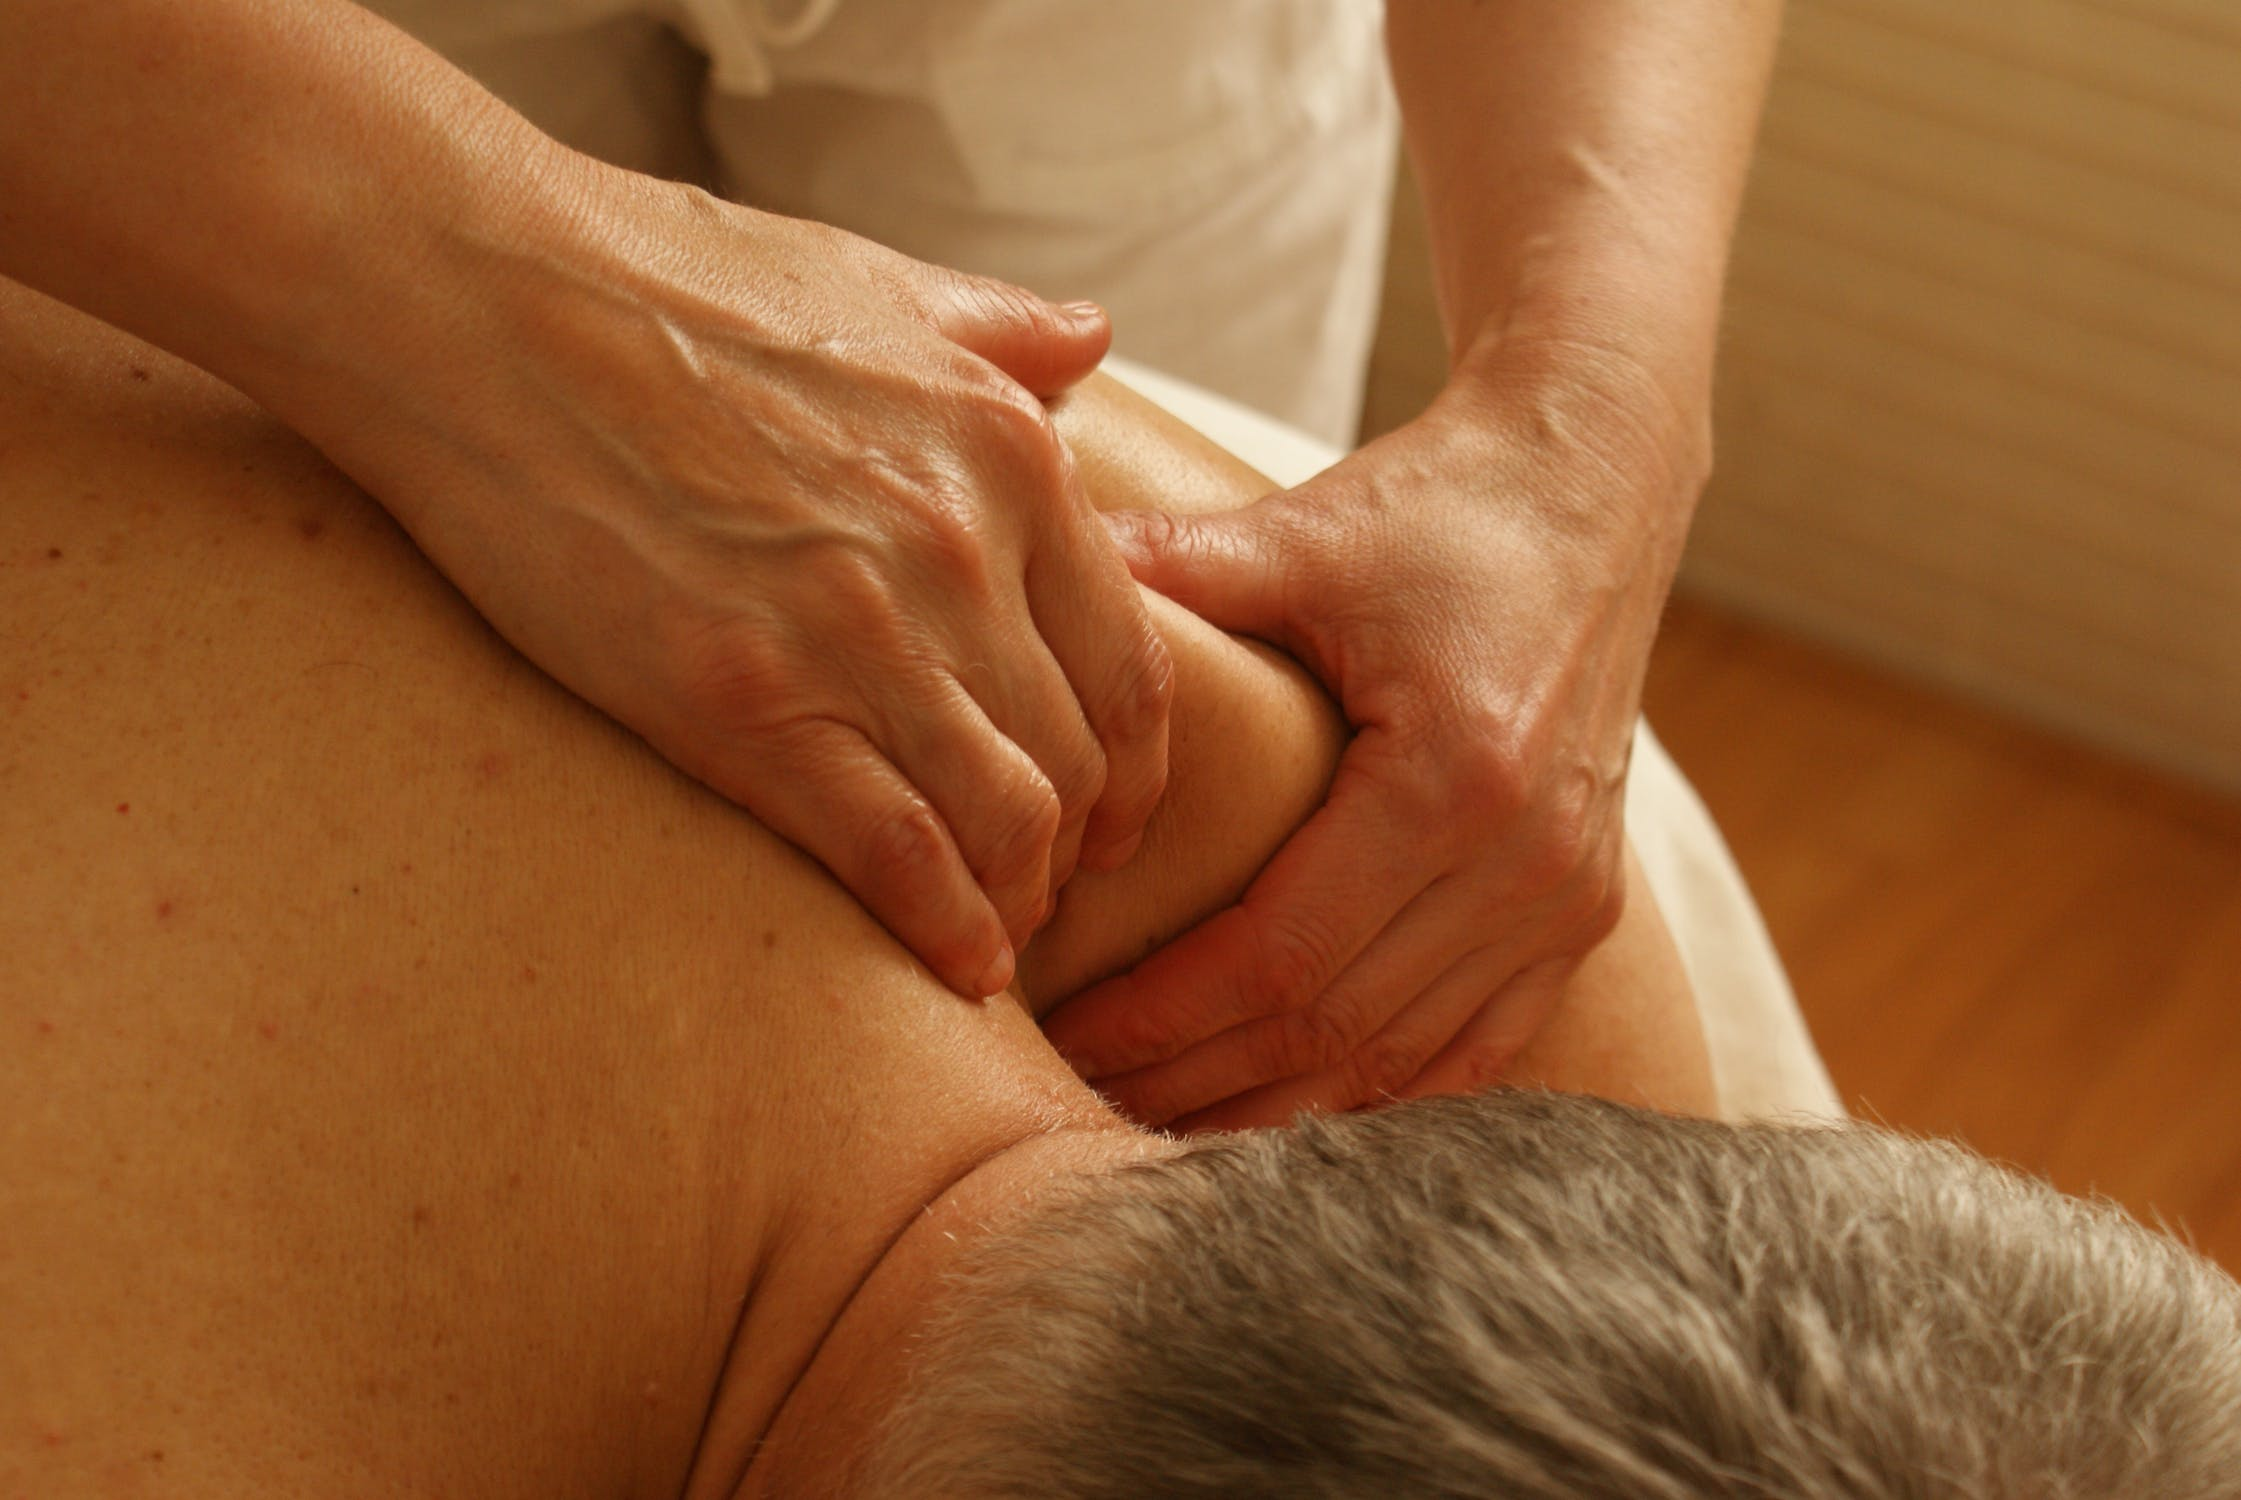 chronic back pain chiropractic care | Pacific Health & Sports Therapy